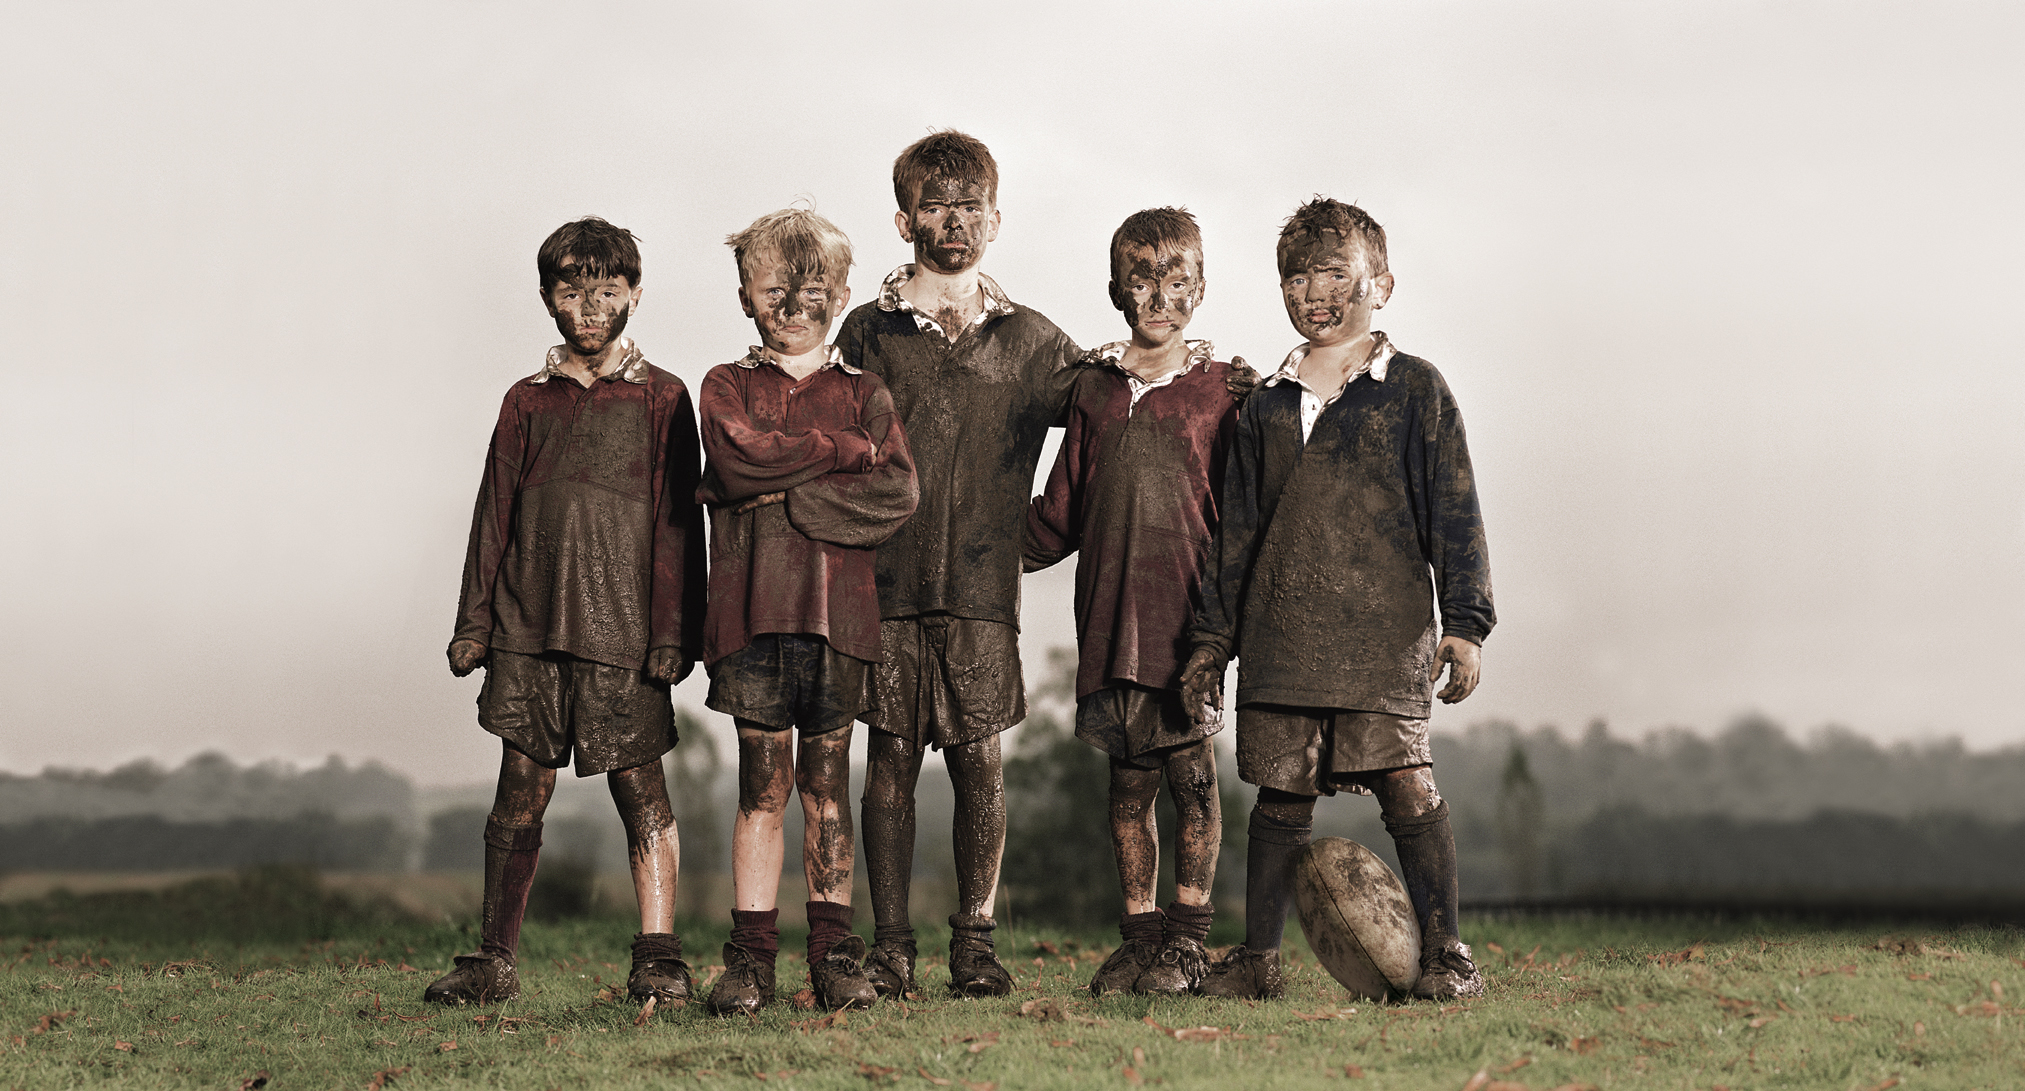 Five boys (8-10) with footall, covered in mud, portrait